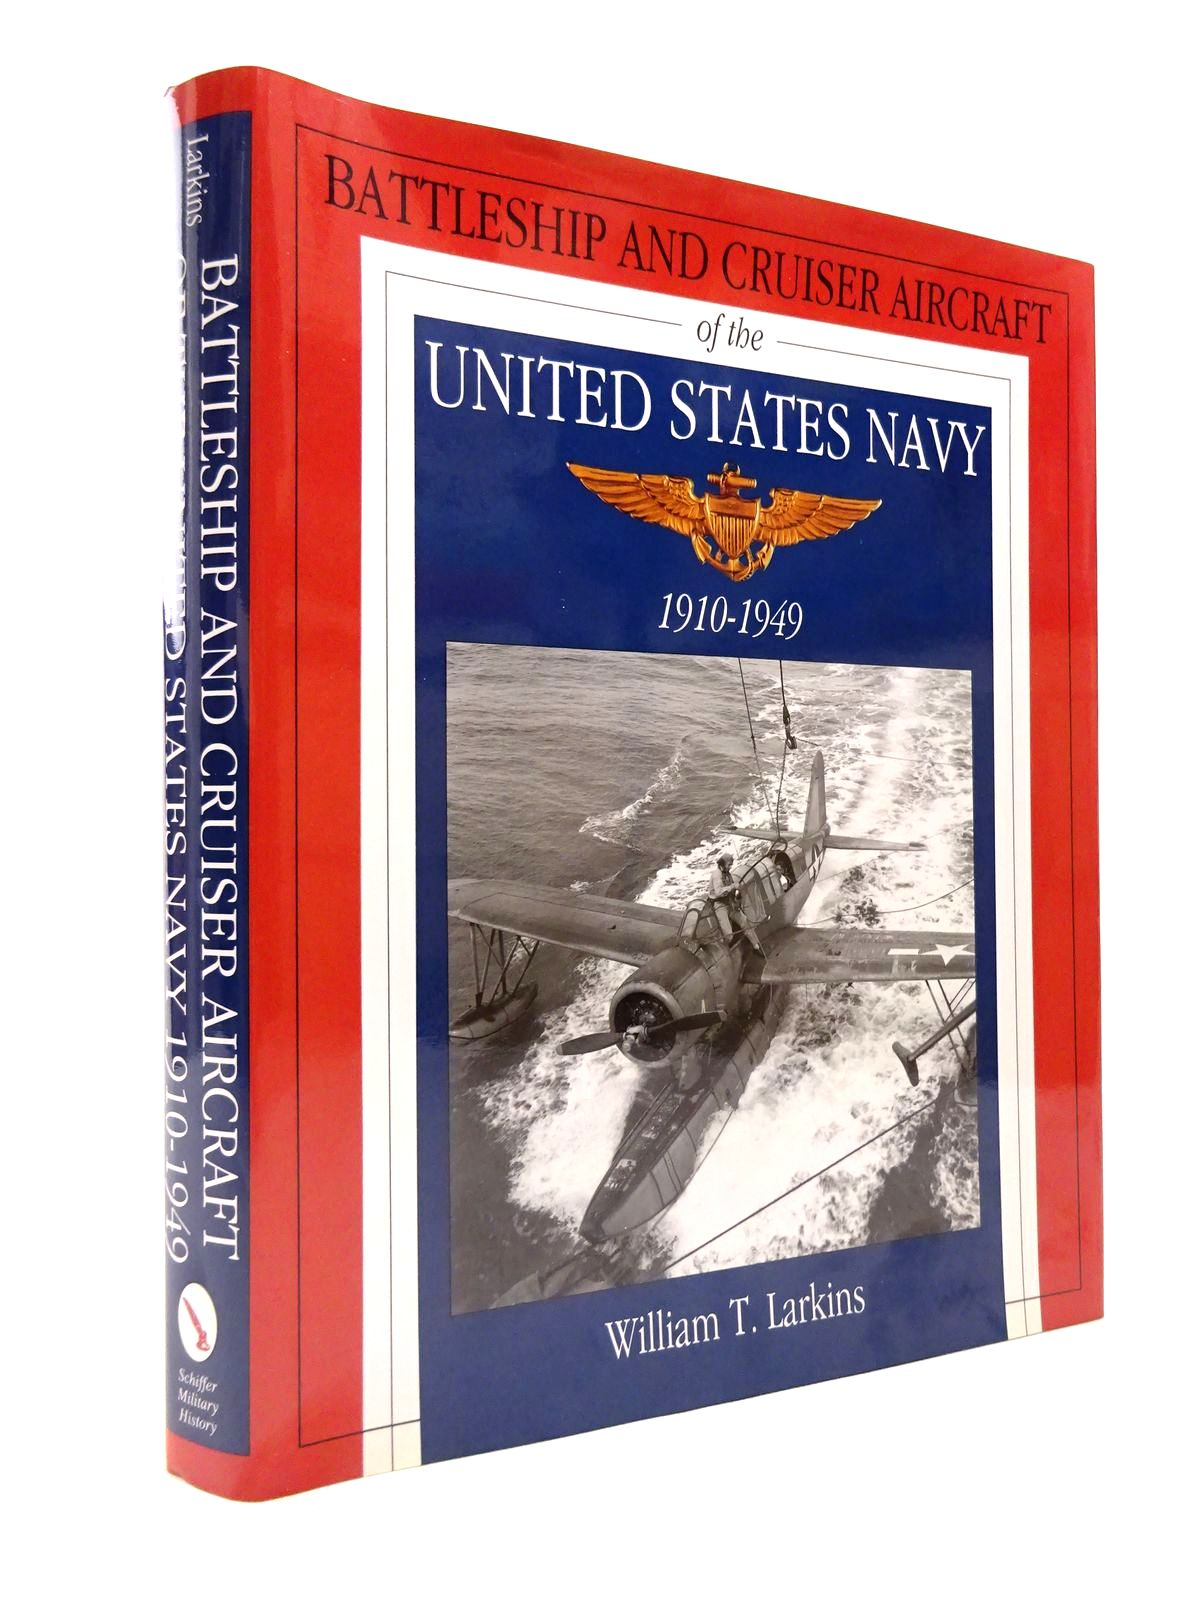 Photo of BATTLESHIP AND CRUISER AIRCRAFT OF THE UNITED STATES NAVY 1910-1949 written by Larkins, William T. published by Schiffer Publishing Ltd. (STOCK CODE: 1815545)  for sale by Stella & Rose's Books